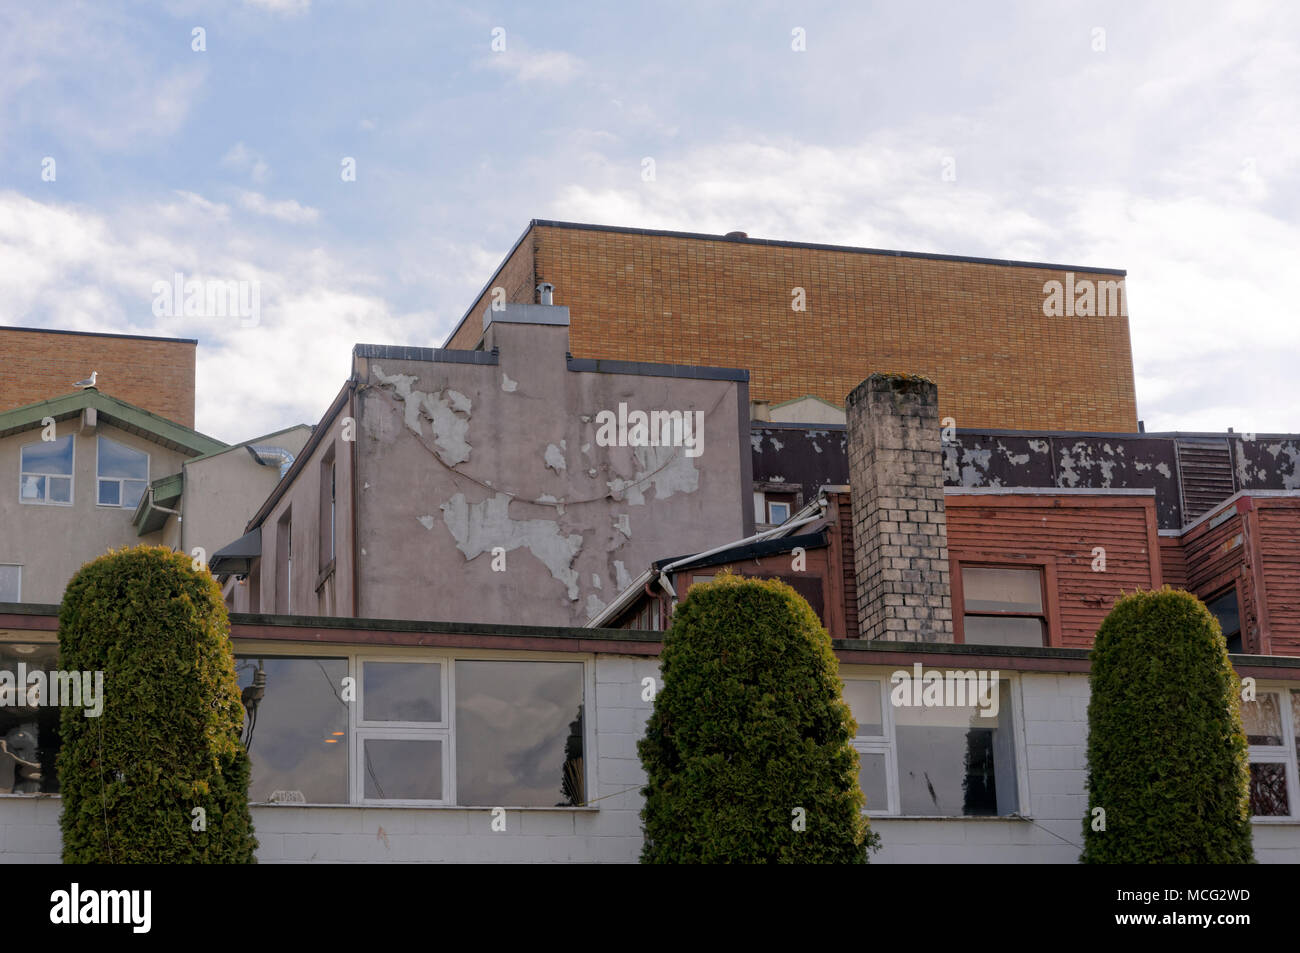 Jumble of eclectic architecture in the South Granville neighborhood of Vancouver, BC, Canada - Stock Image